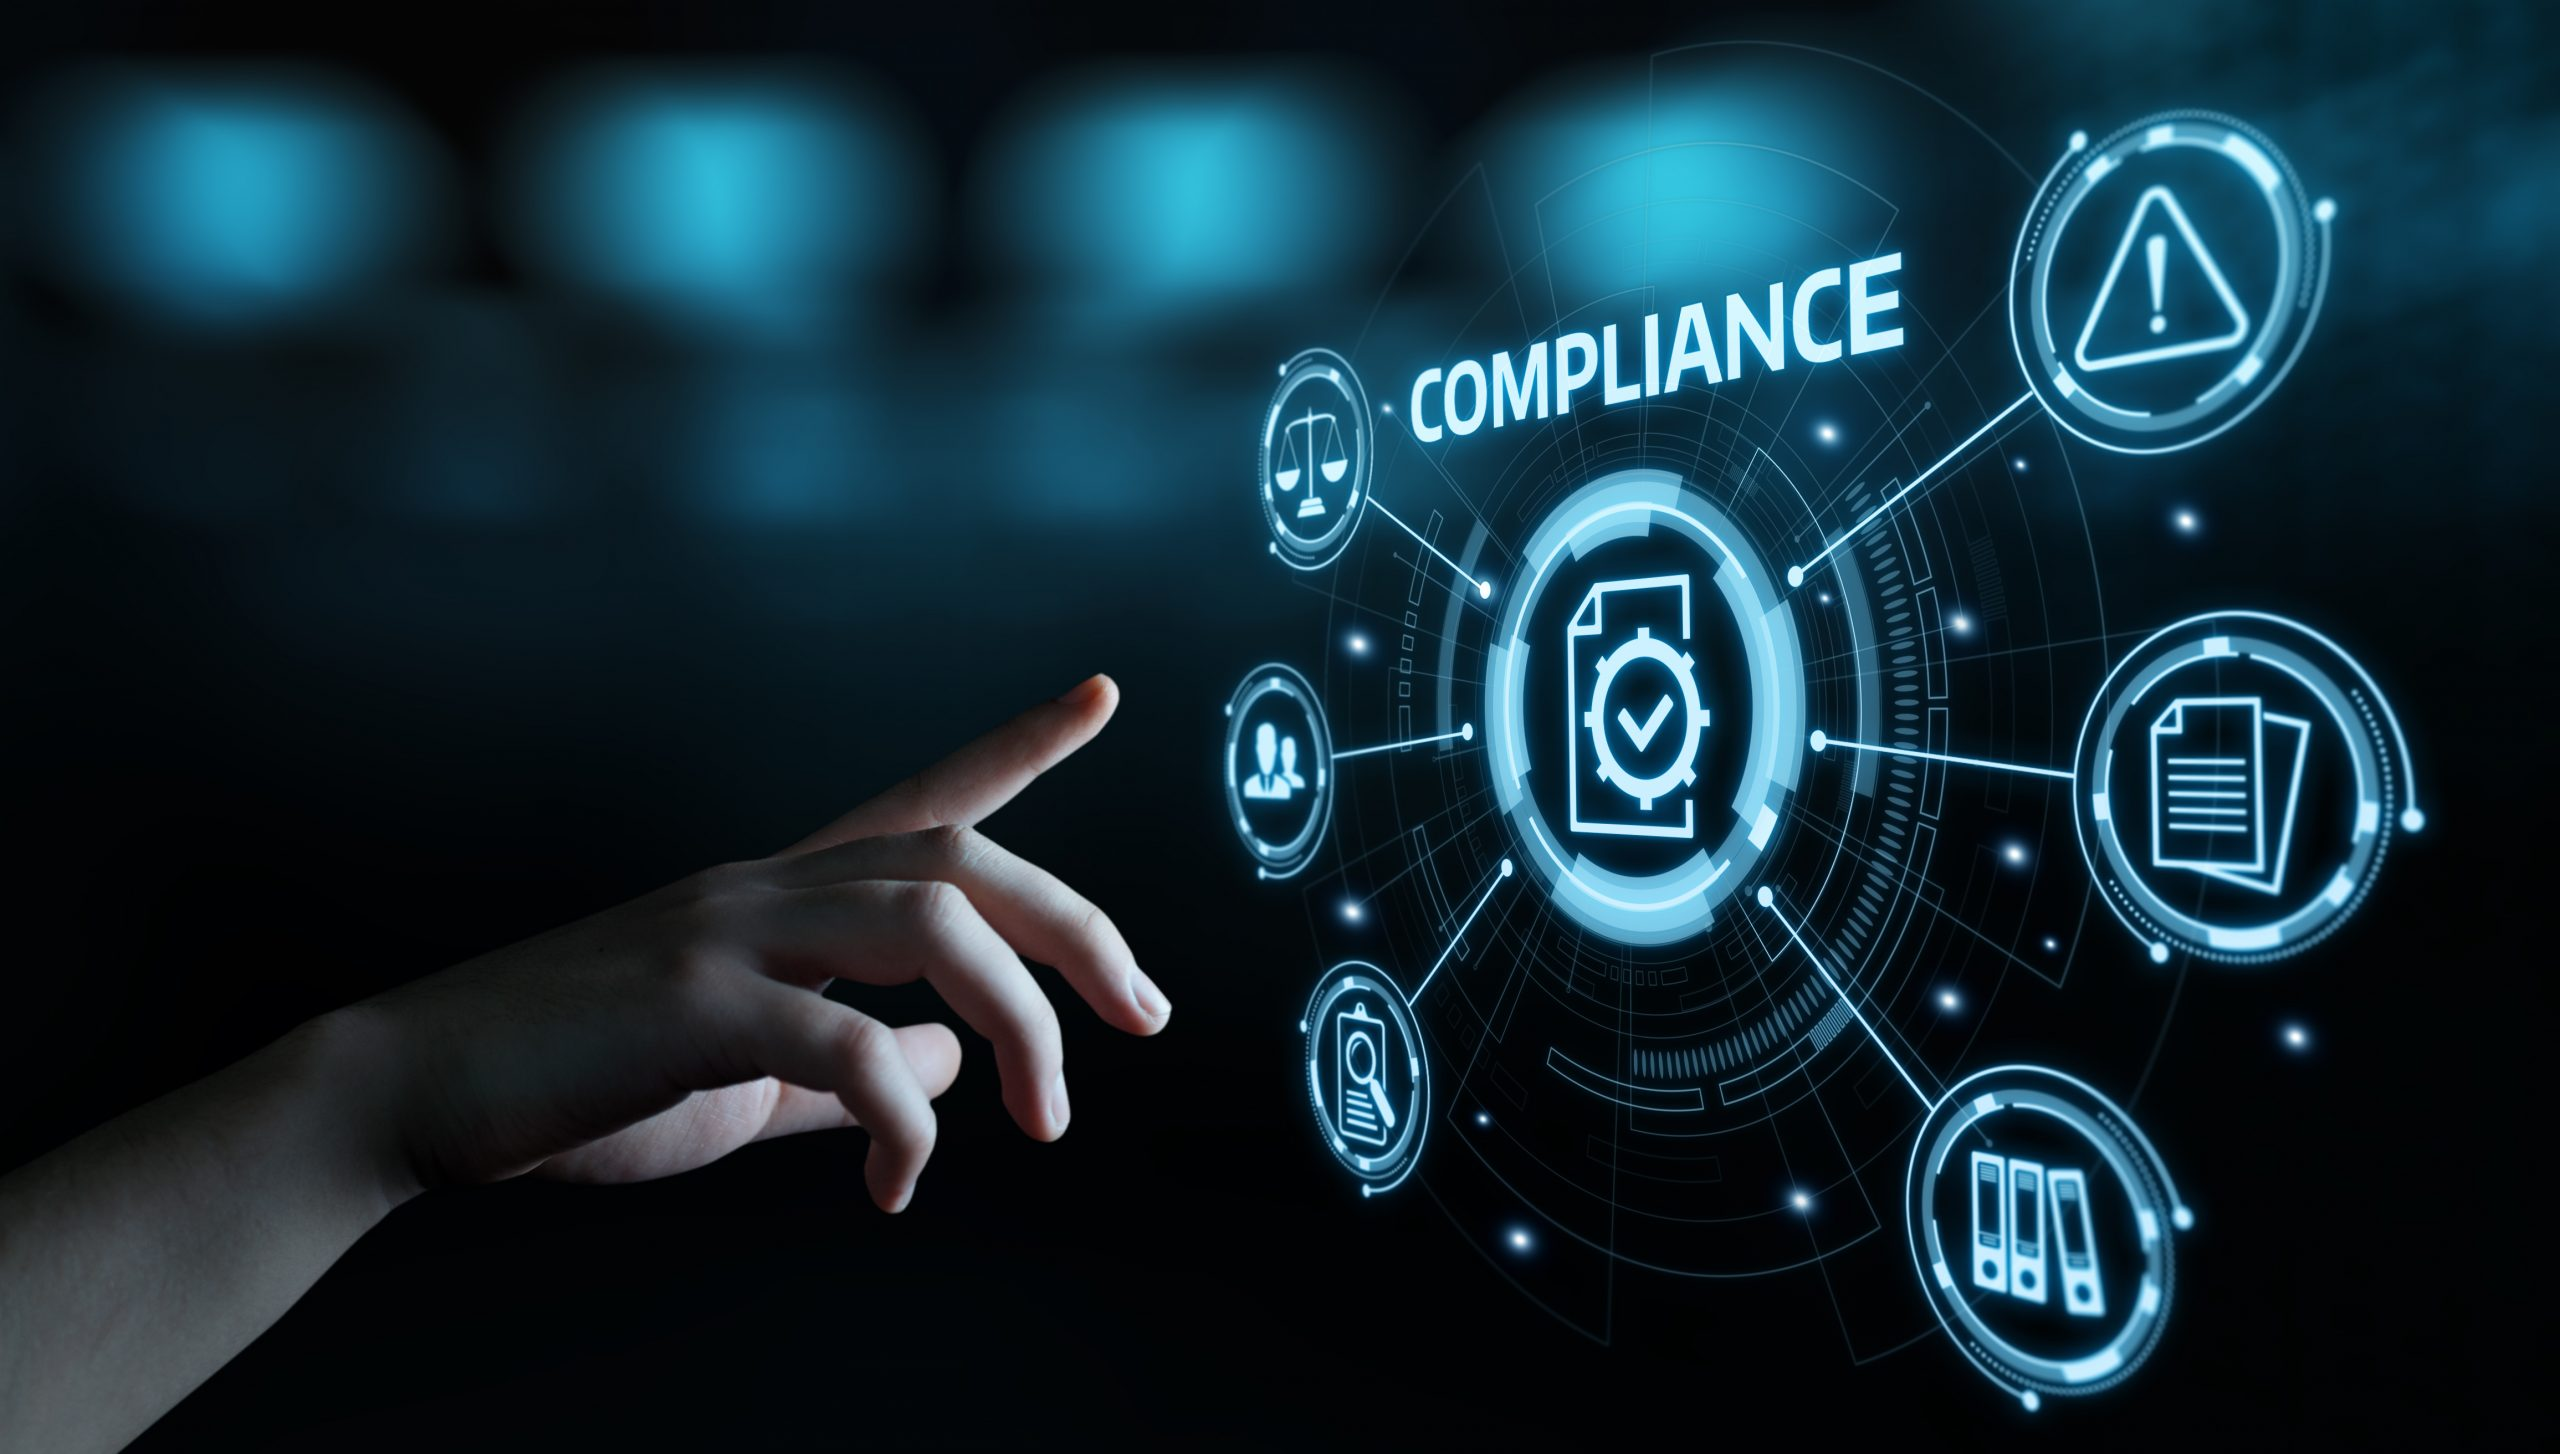 Compliance,Rules,Law,Regulation,Policy,Business,Technology,Concept.